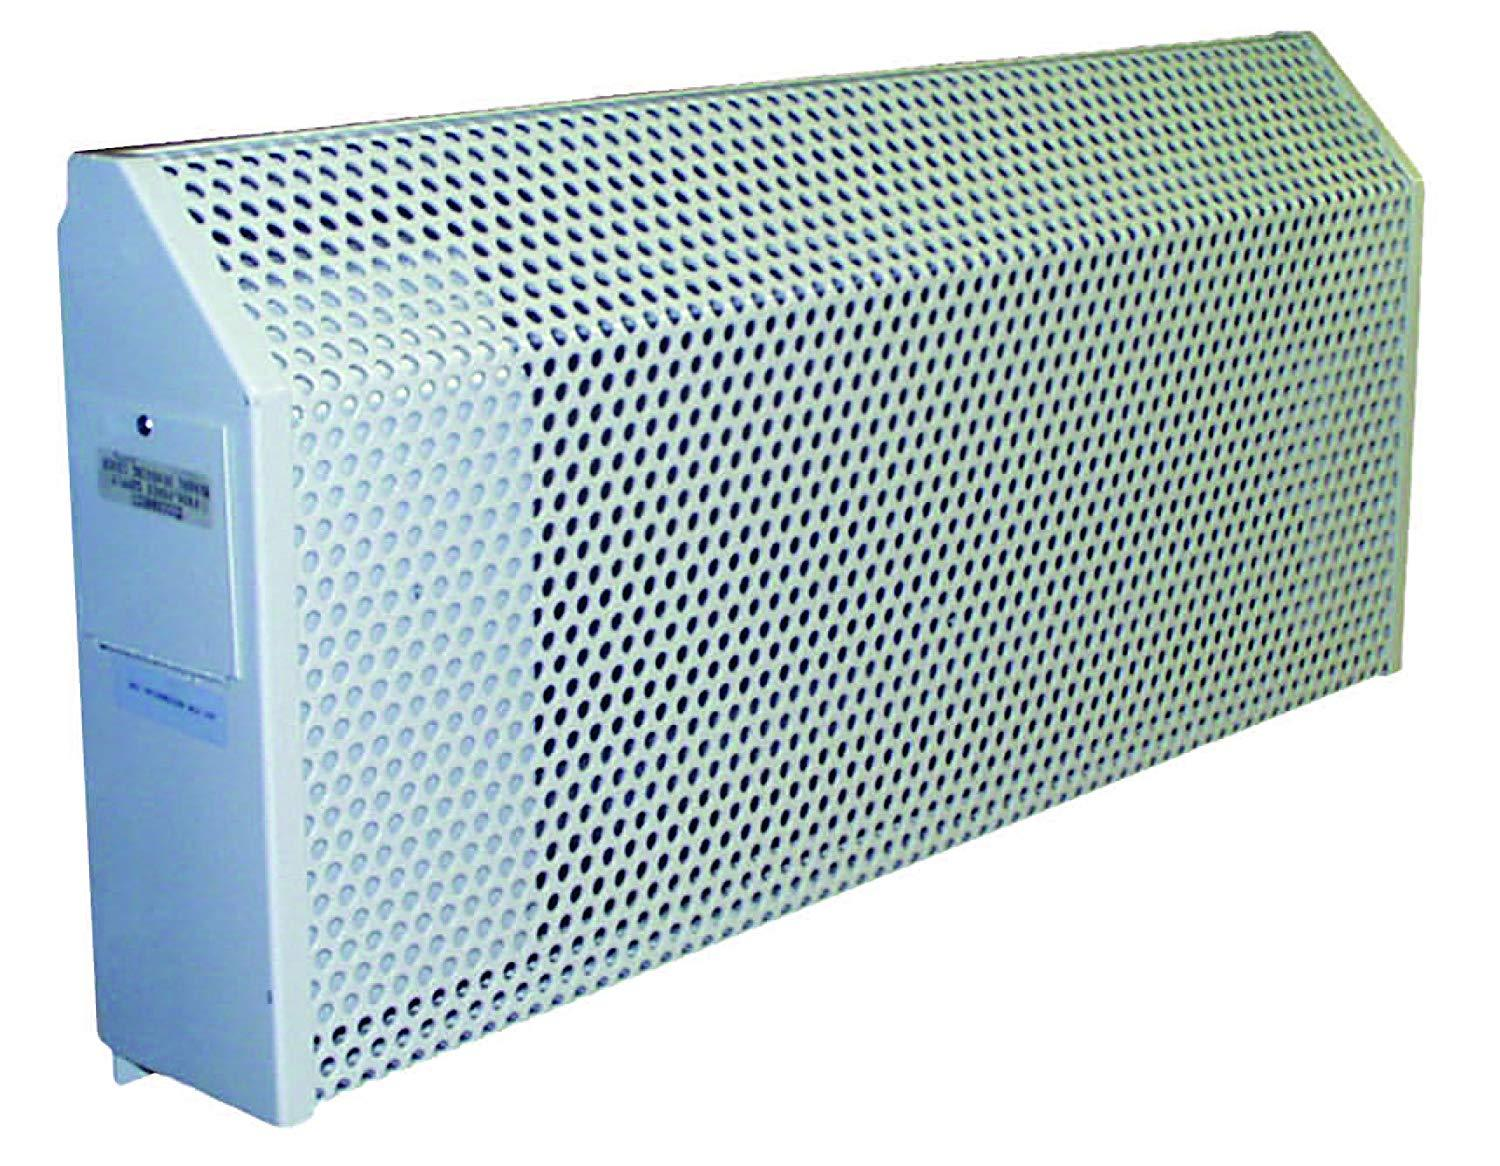 TPI 500W 240V Institutional Wall Convector - H8801050